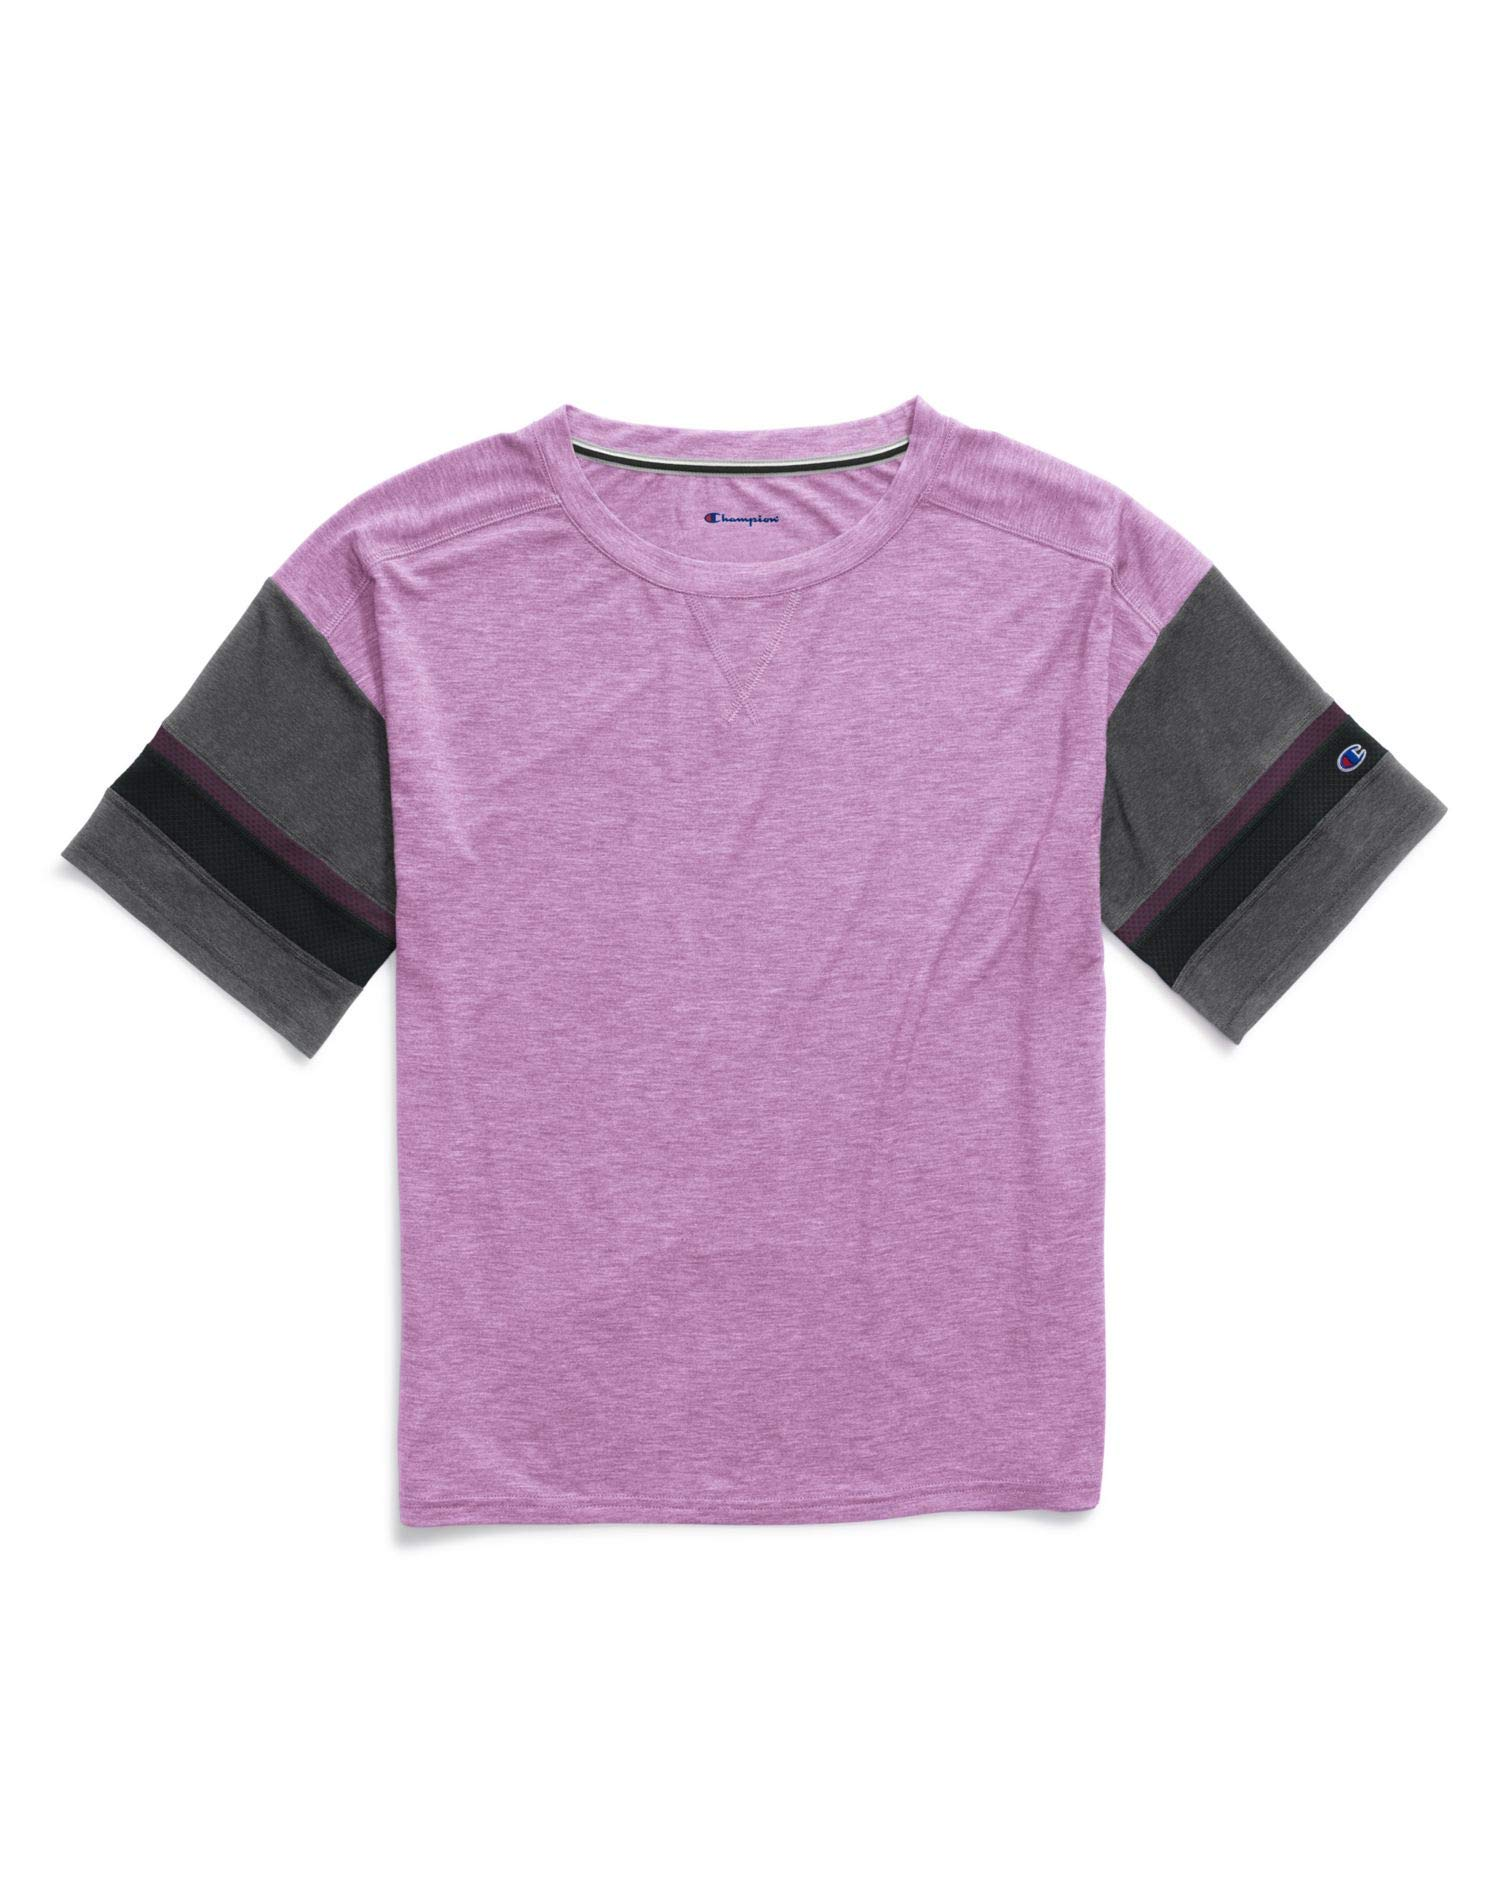 Champion Womens Gym Issue Football Tee, M, Paper Orchid Heather